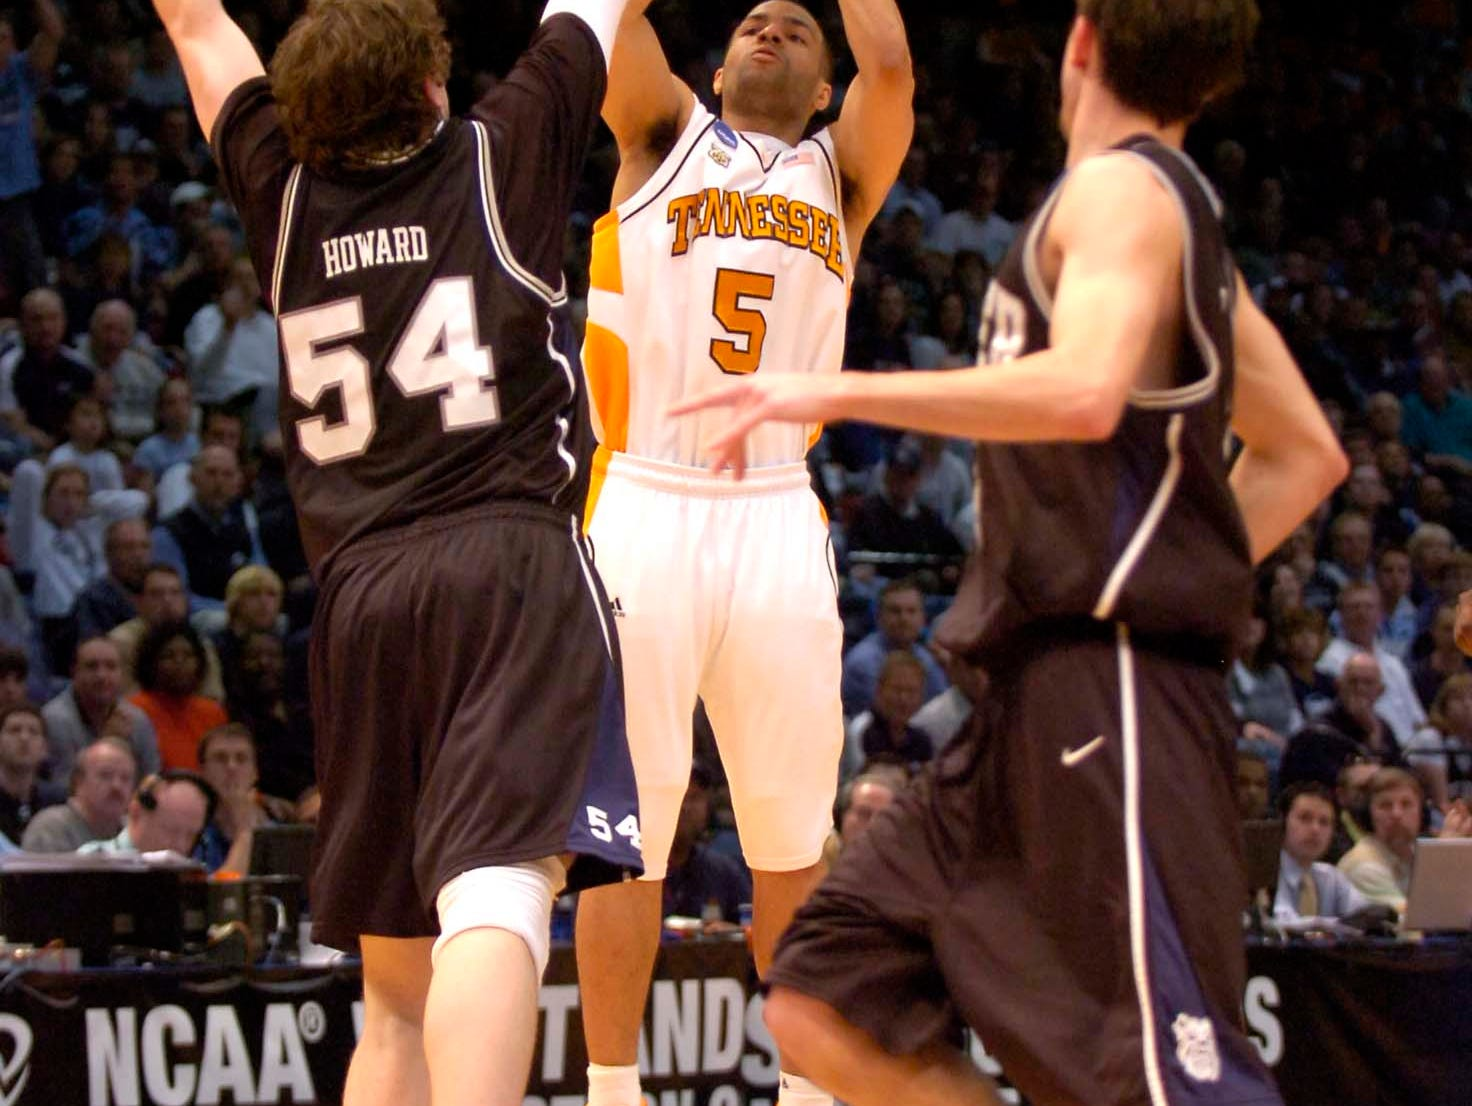 Tennessee's Chris Lofton shoots for three over Butler's Matt Howard at the Birmingham Jefferson Convention Center in Birmingham, Alabama during second round play in the 2008 NCAA Tournament on Sunday. Tennessee defeated Butler 76-71 and will advance to the Sweet Sixteen in Charlotte, NC next week.